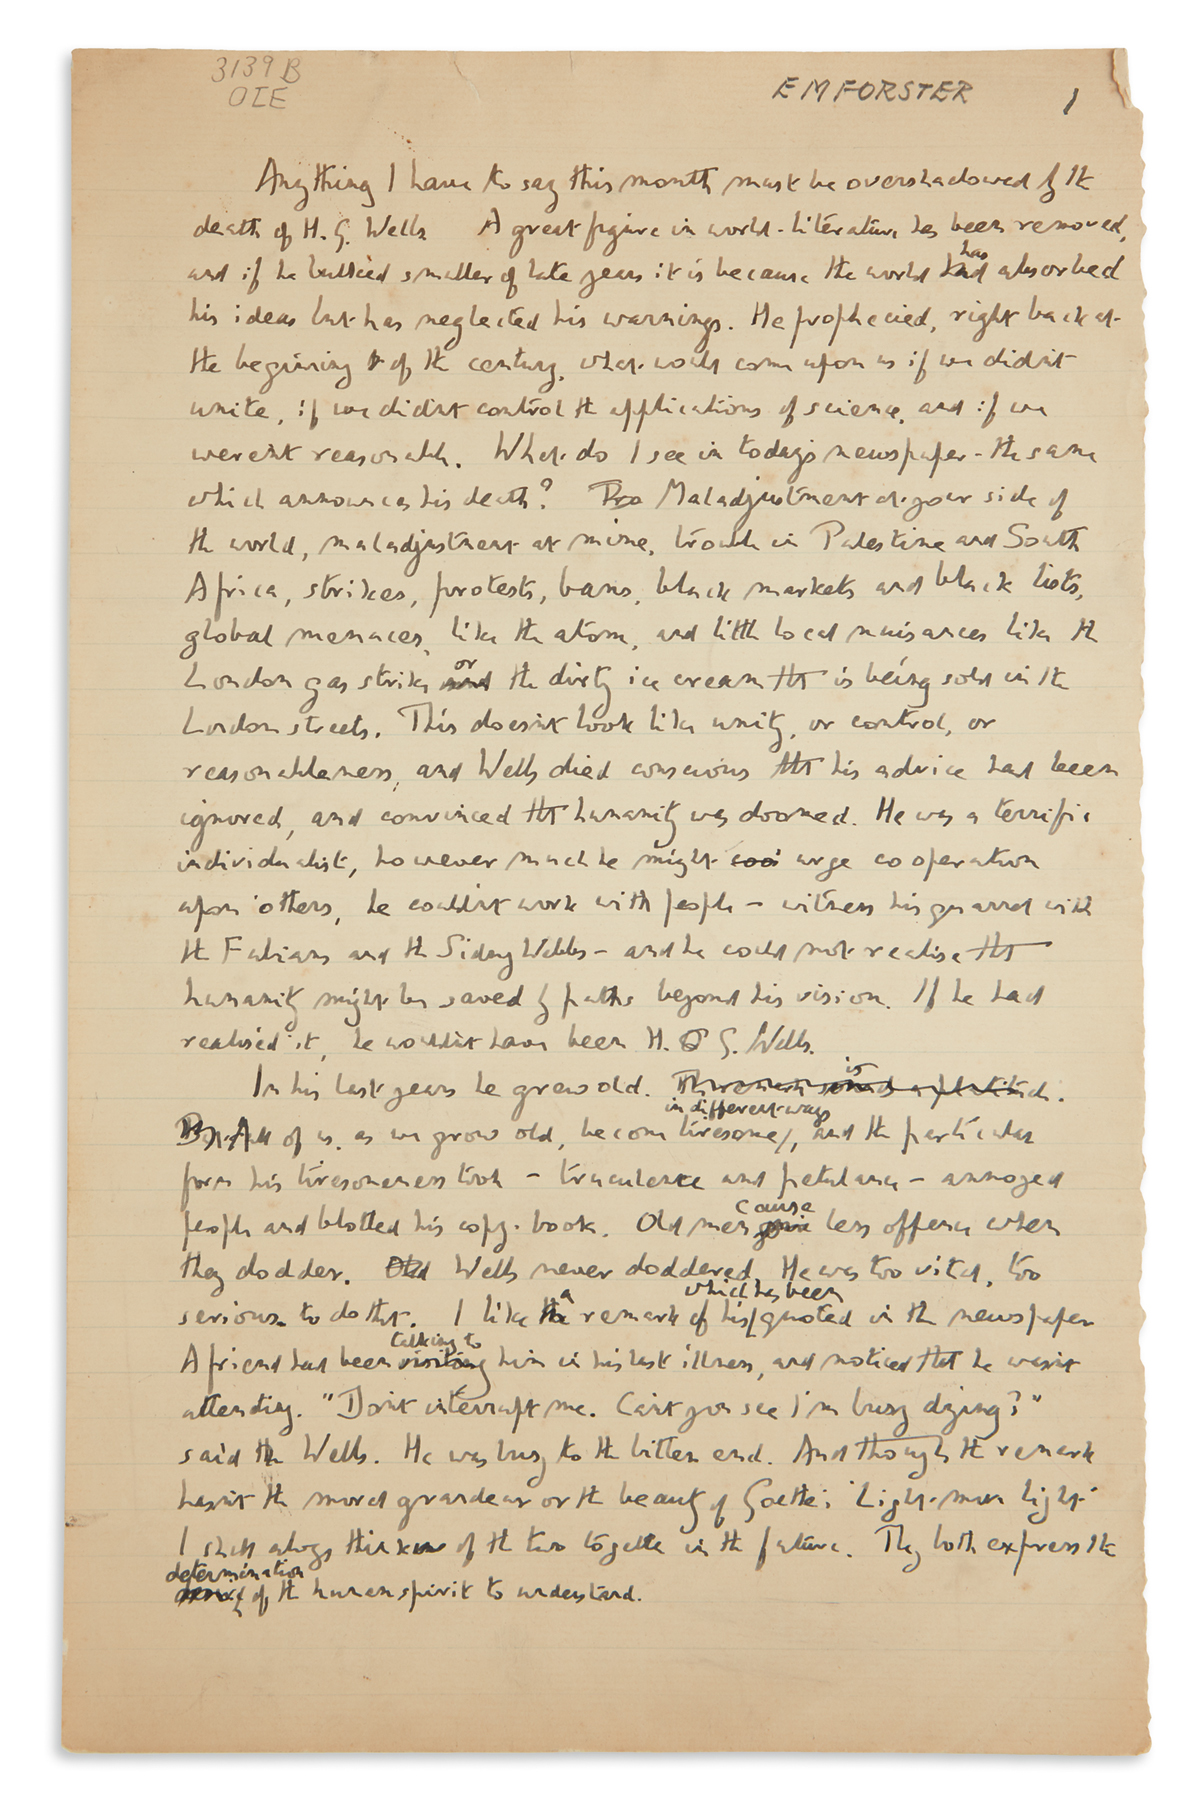 E.M. FORSTER. Autograph Manuscript, unsigned, working draft of a script for an episode of his Some Books radio program for BBC,